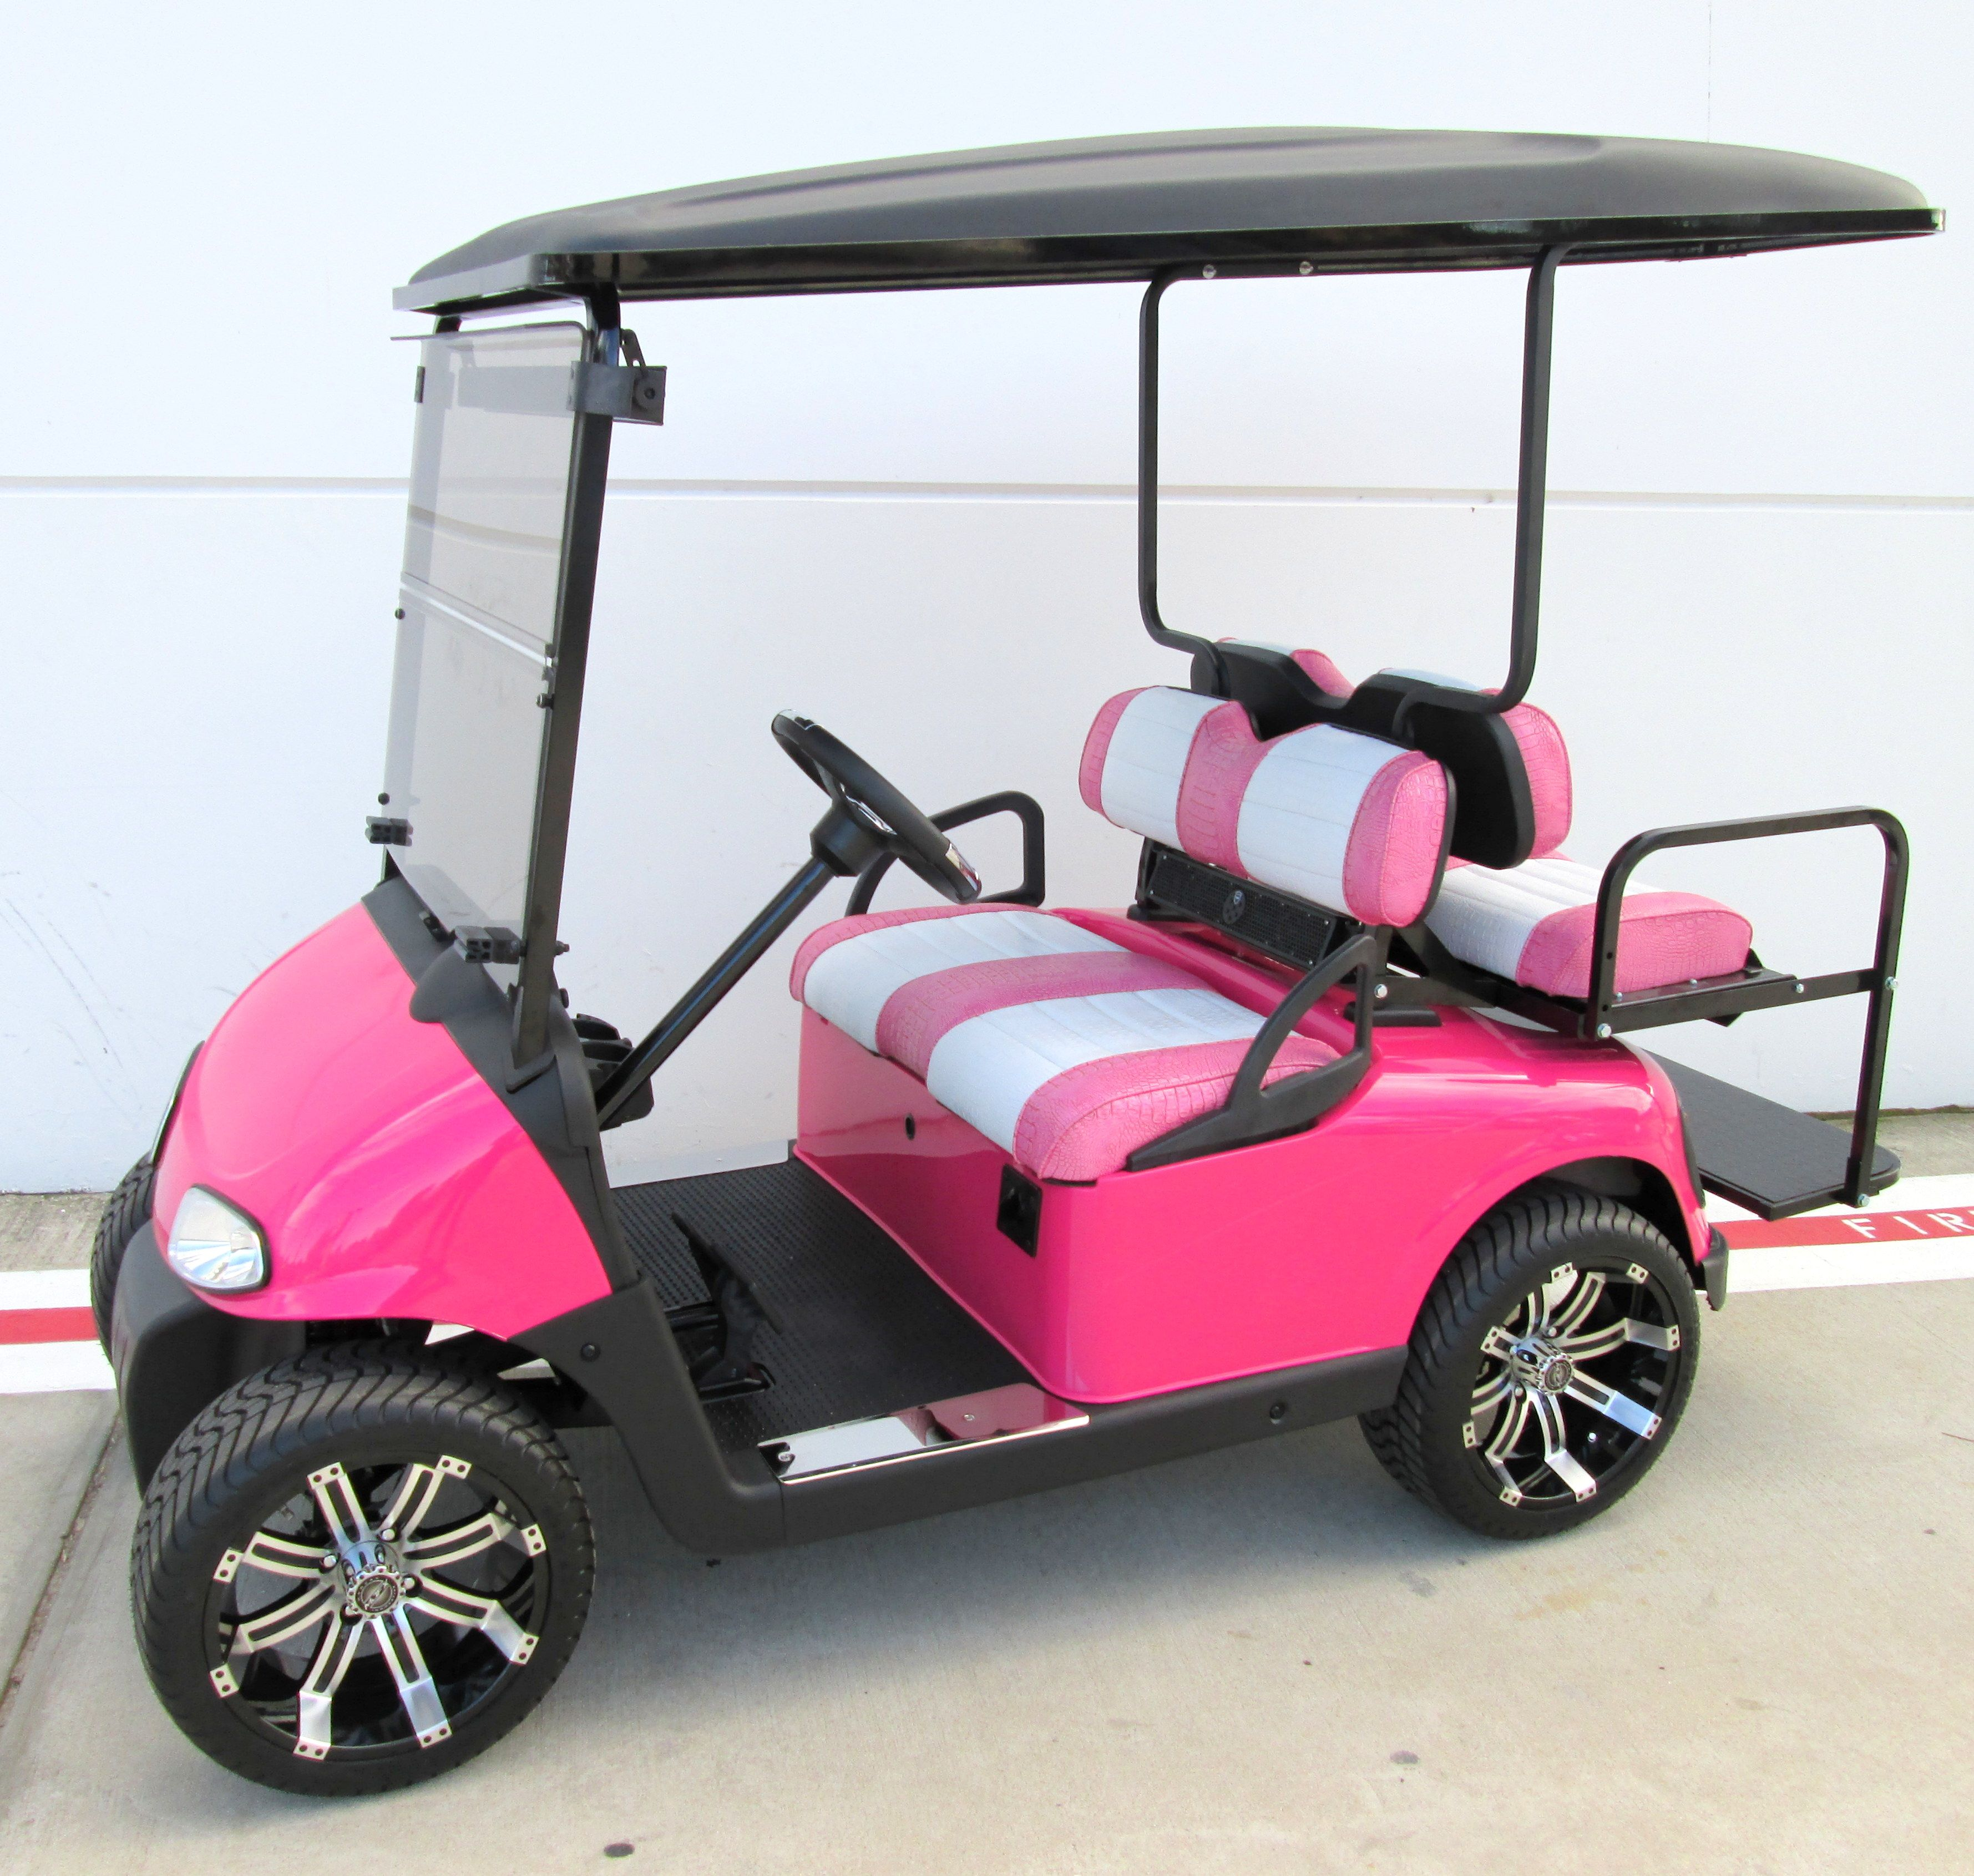 19TH HOLE GOLF CARTS - HOT PINK EZGO GOLF CART WITH CUSTOM ... Ezgo Golf Cart Videos Luxury Carts Parked on